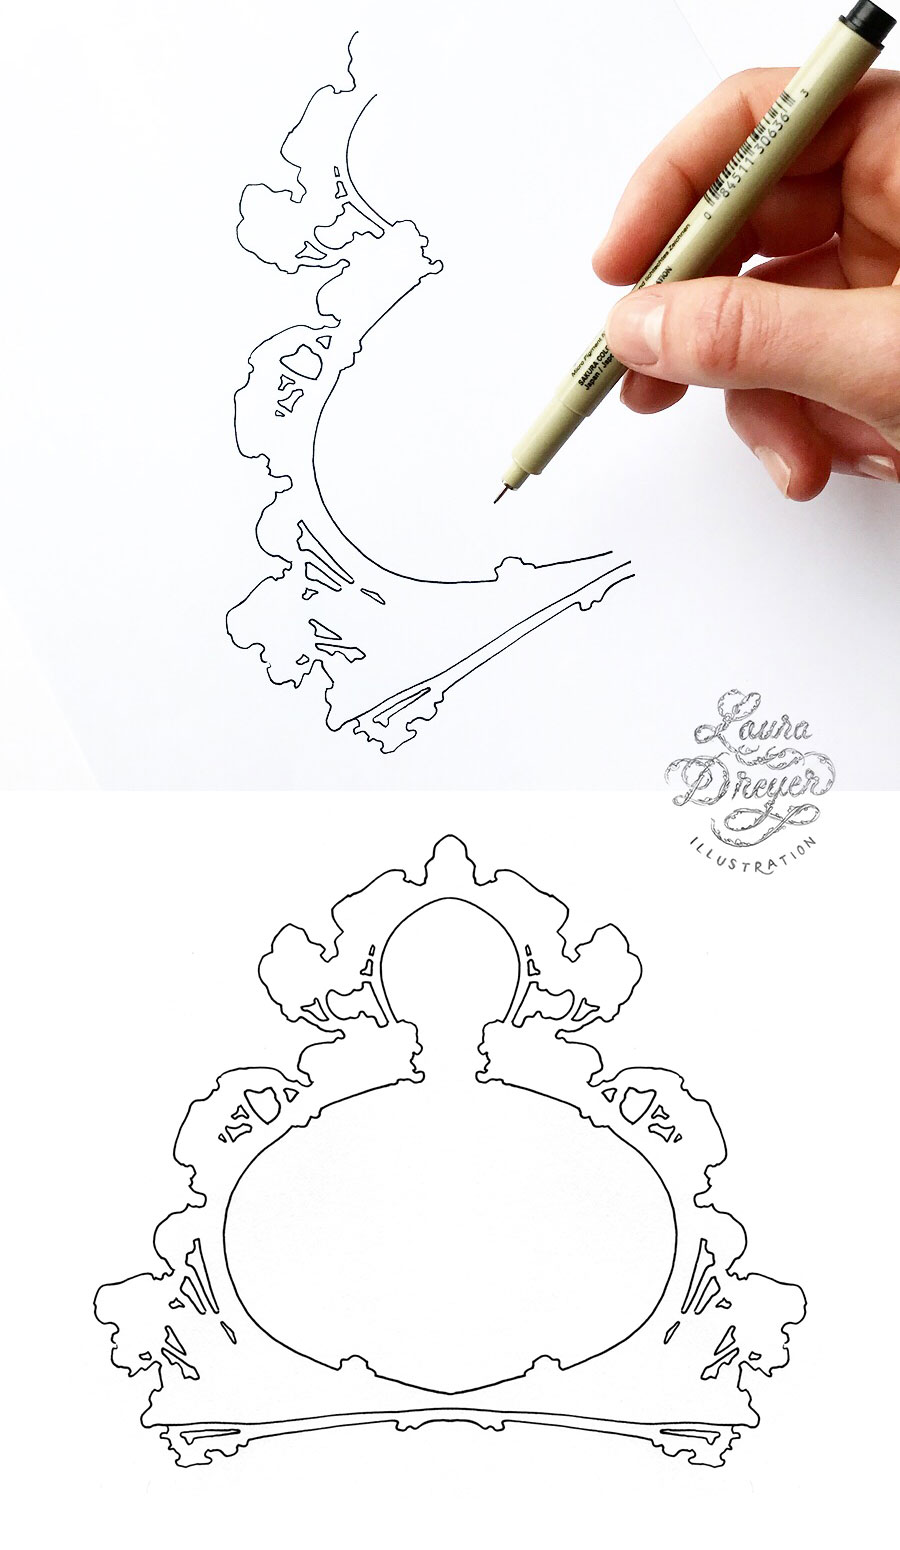 Drawing symmetrical decorative frames by Laura Dreyer.